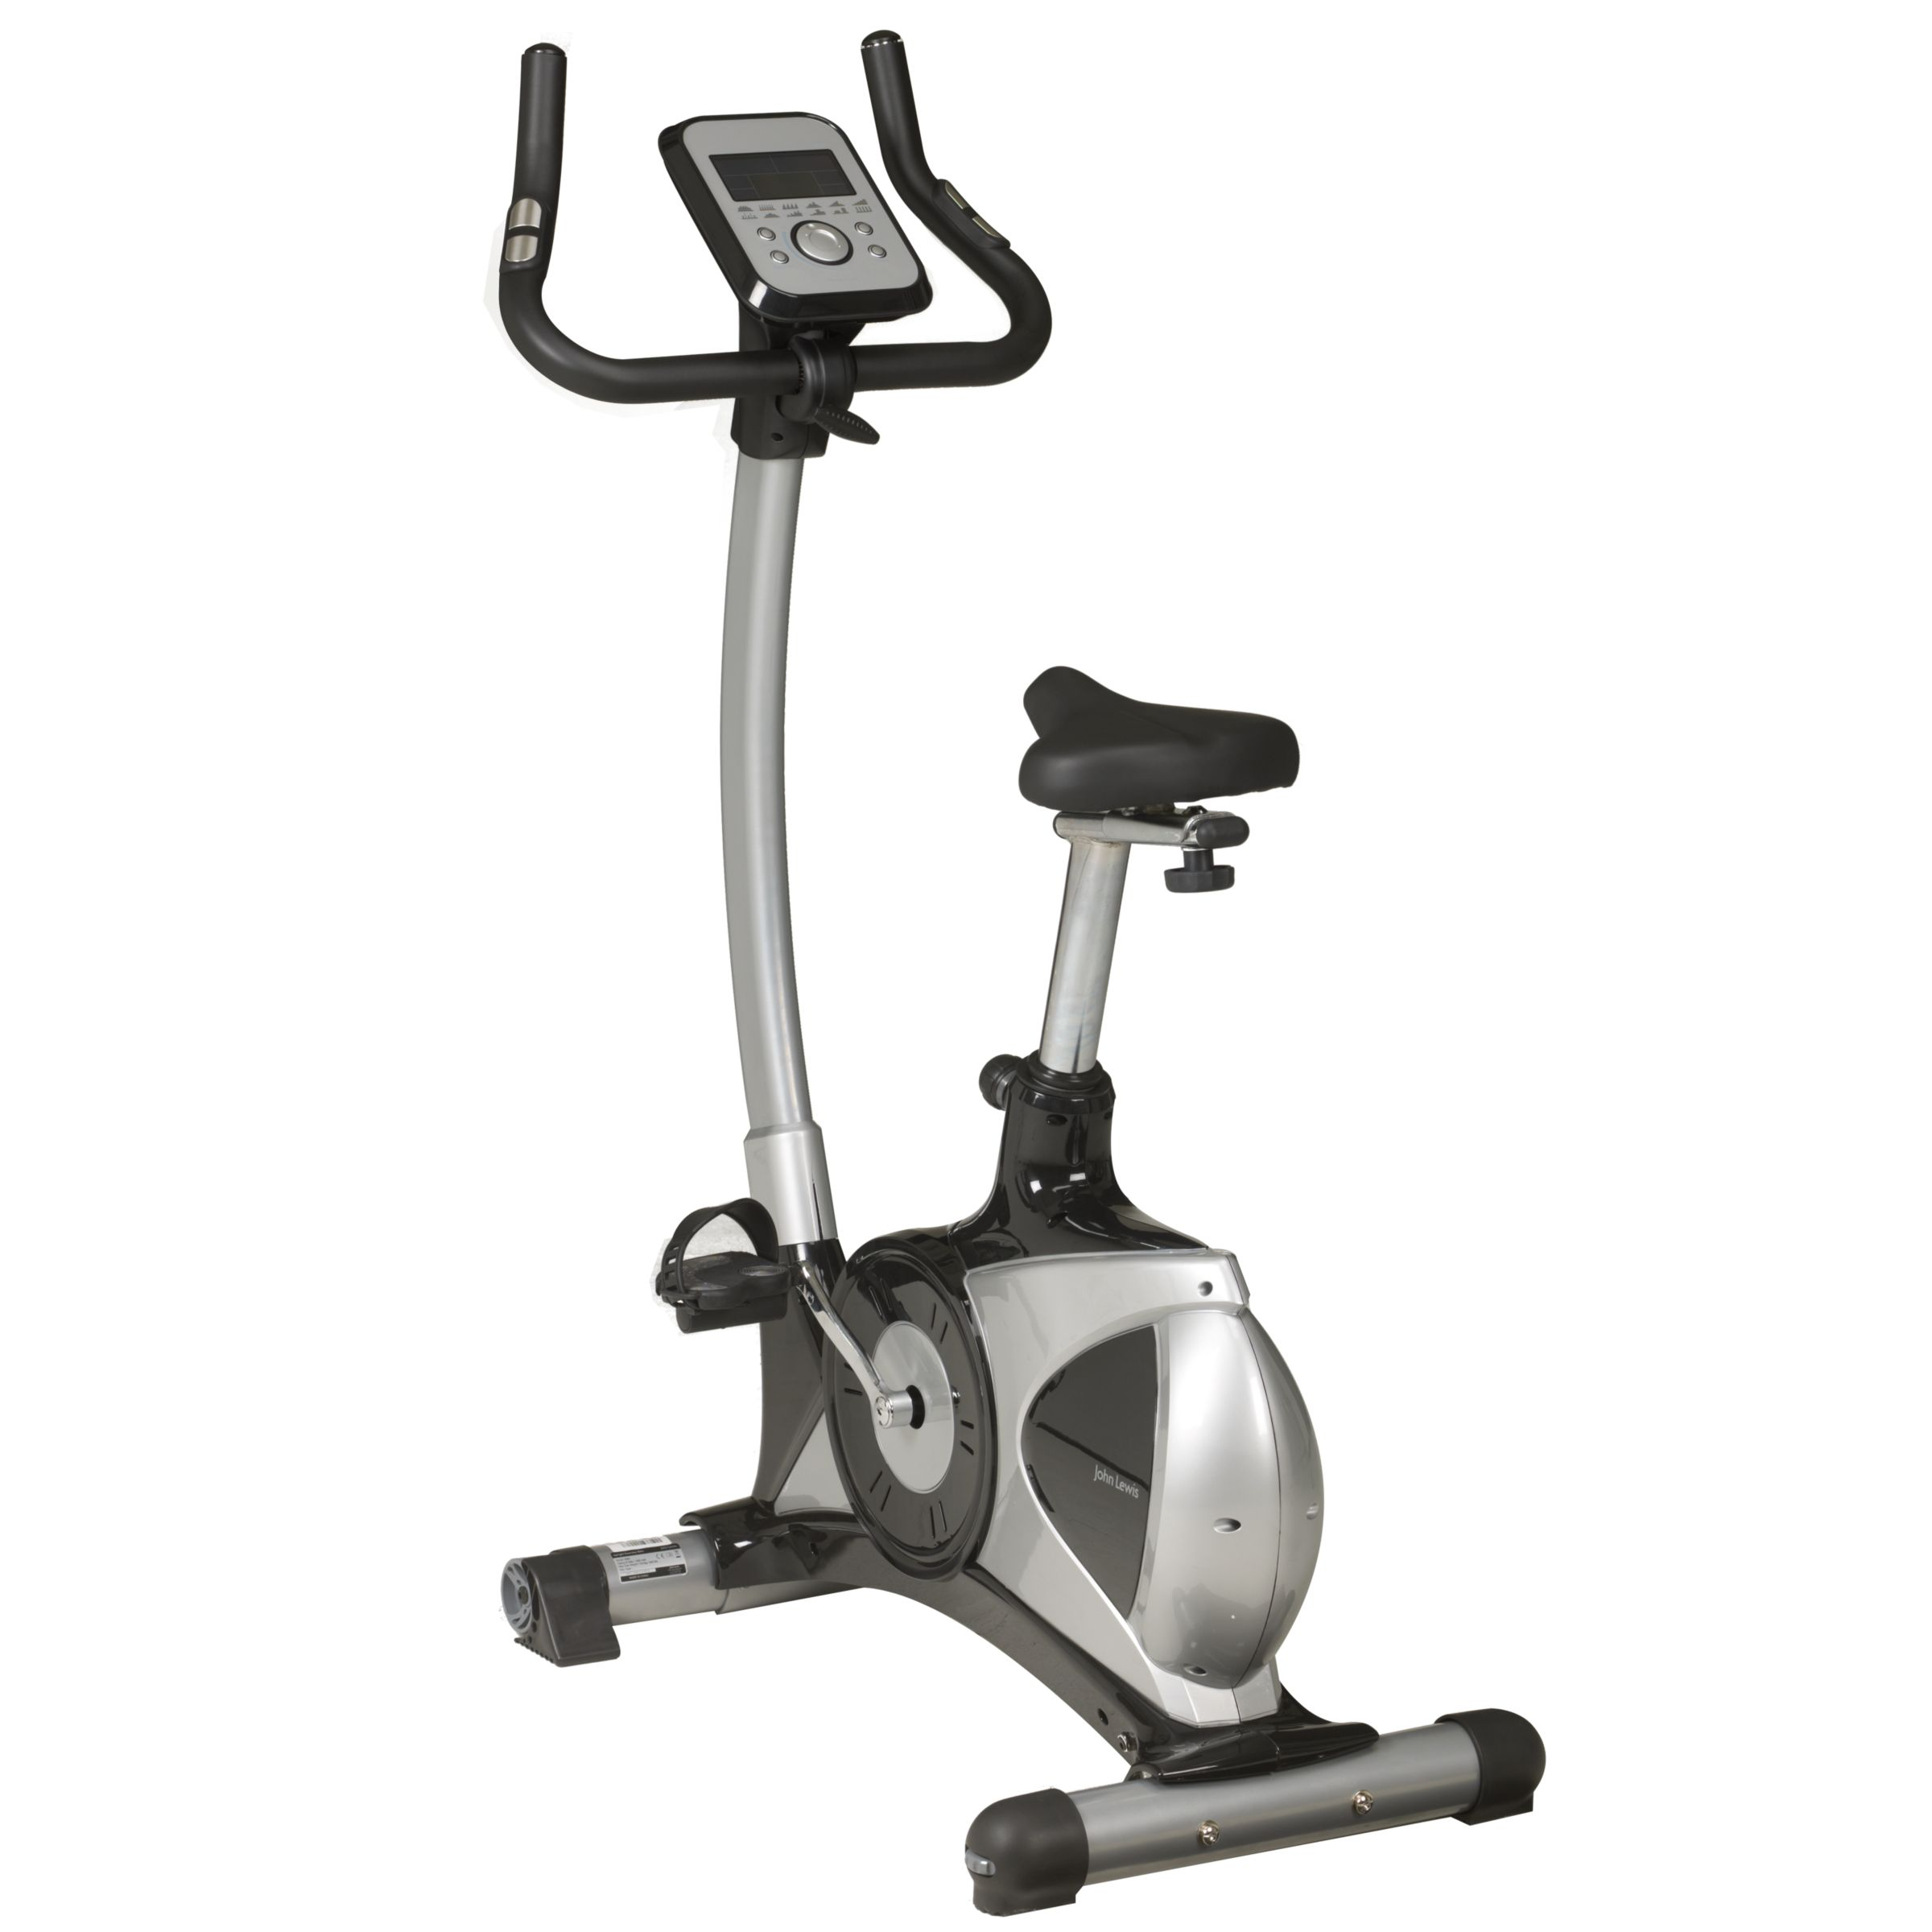 Fitness Equipment Buying Guide